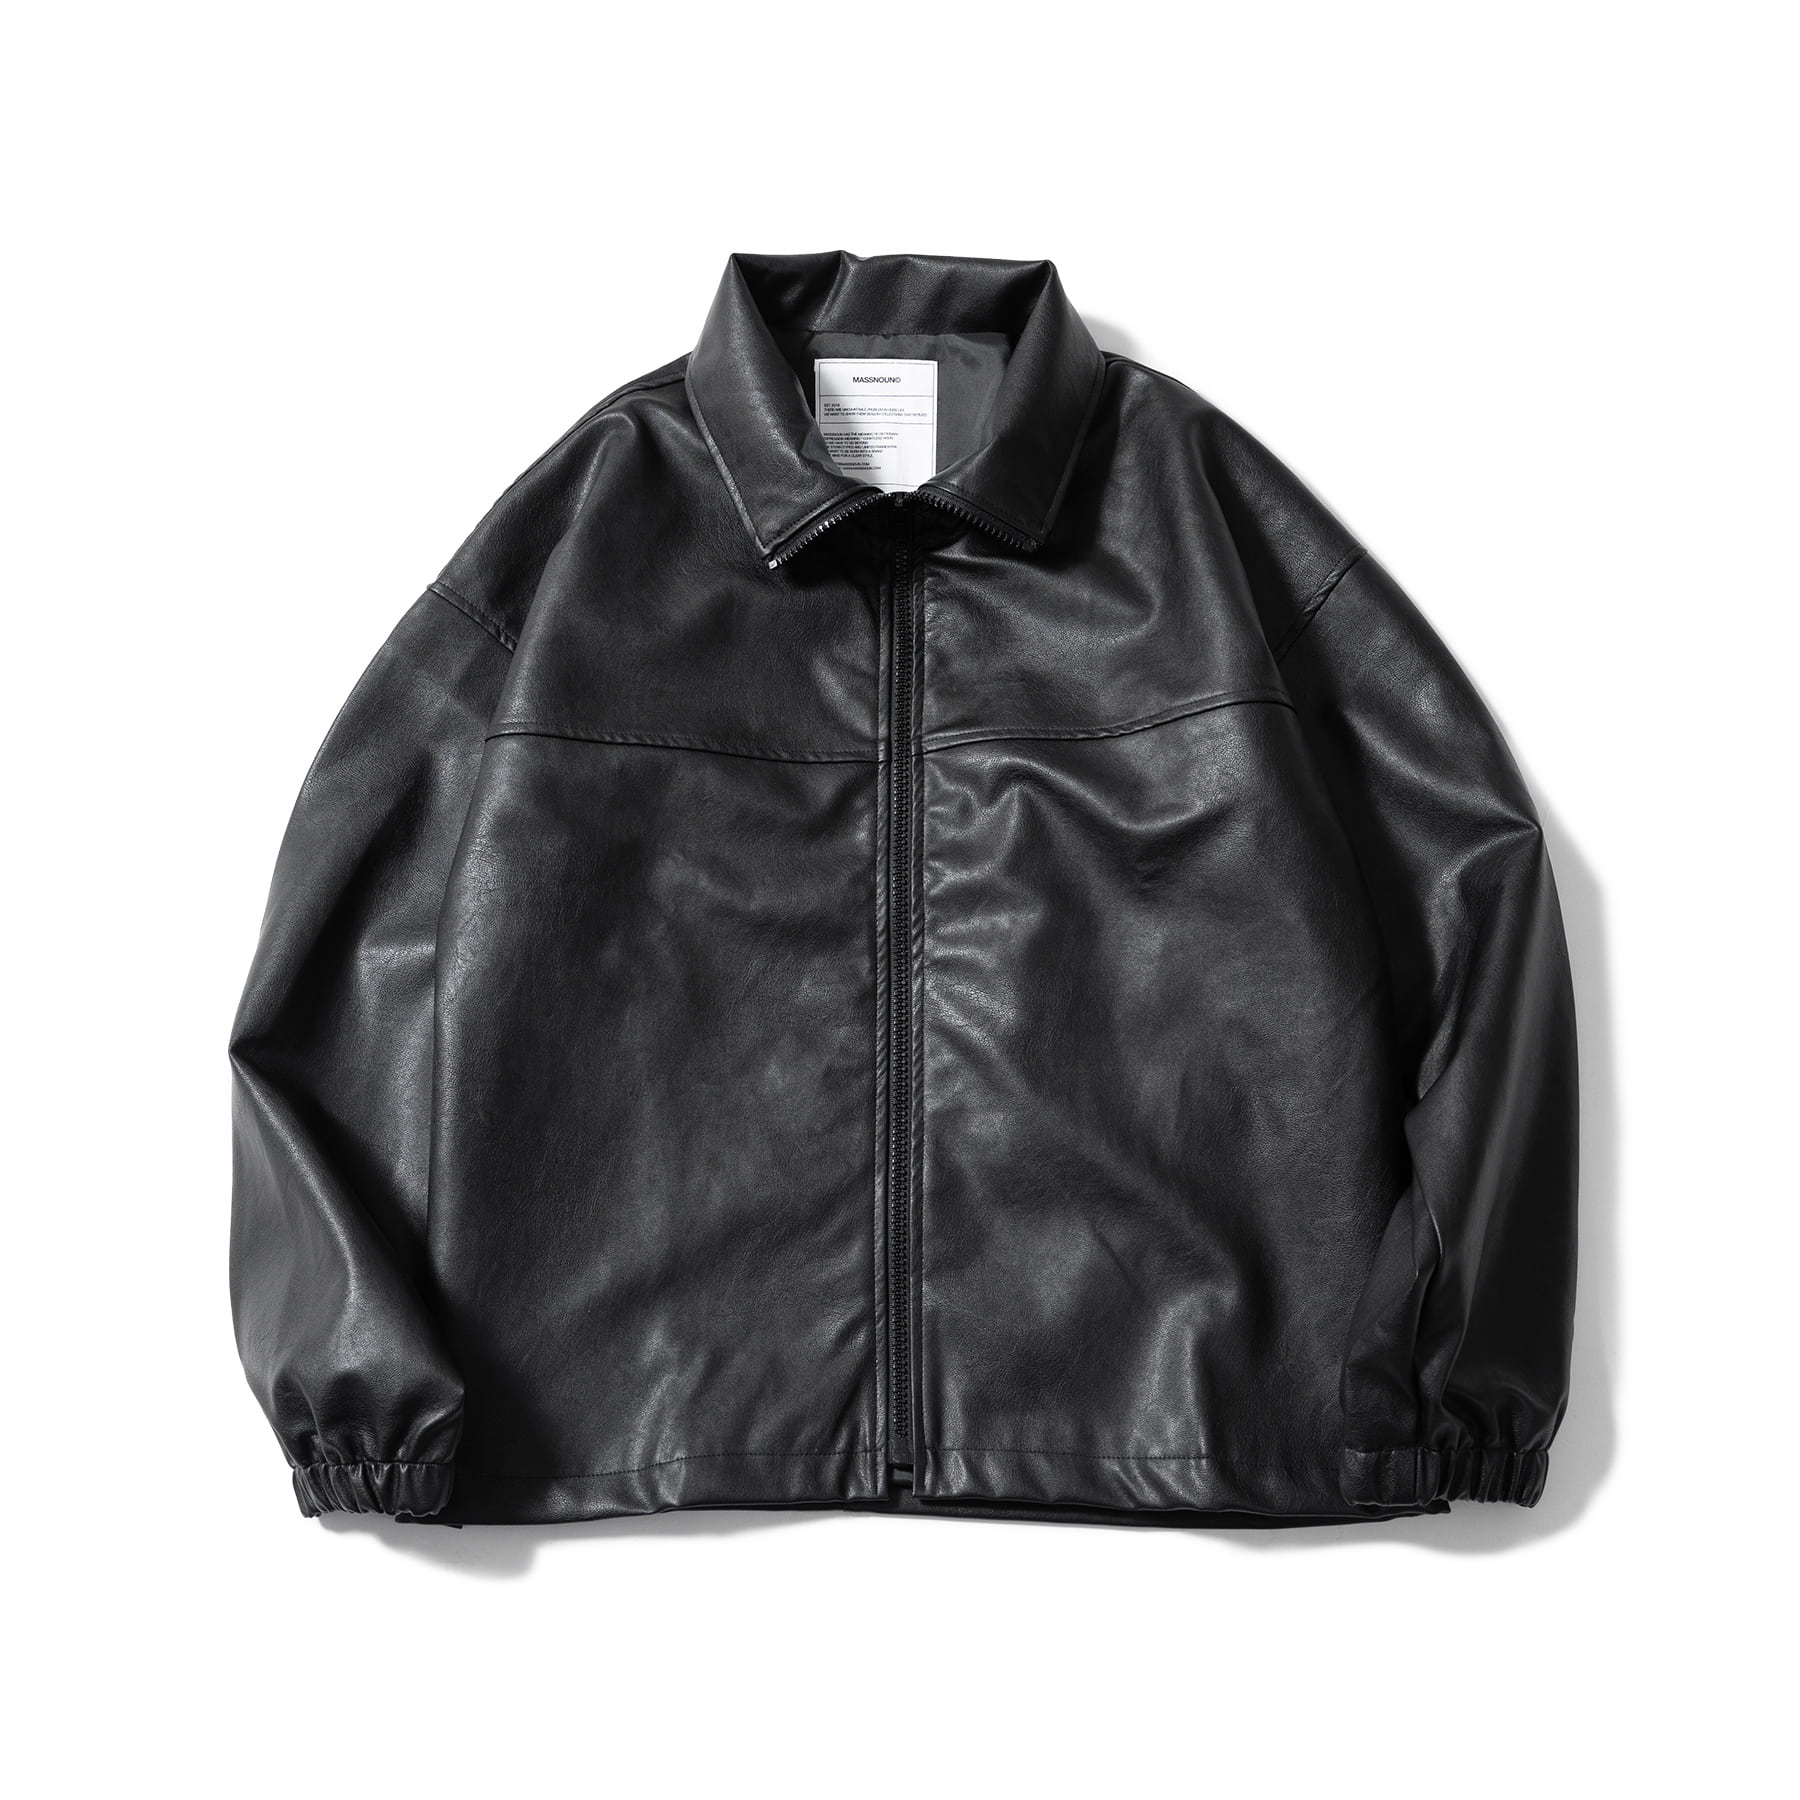 (30%)VEGAN LEATHER OVER ZIP-UP JACKET MSOLJ002-BK